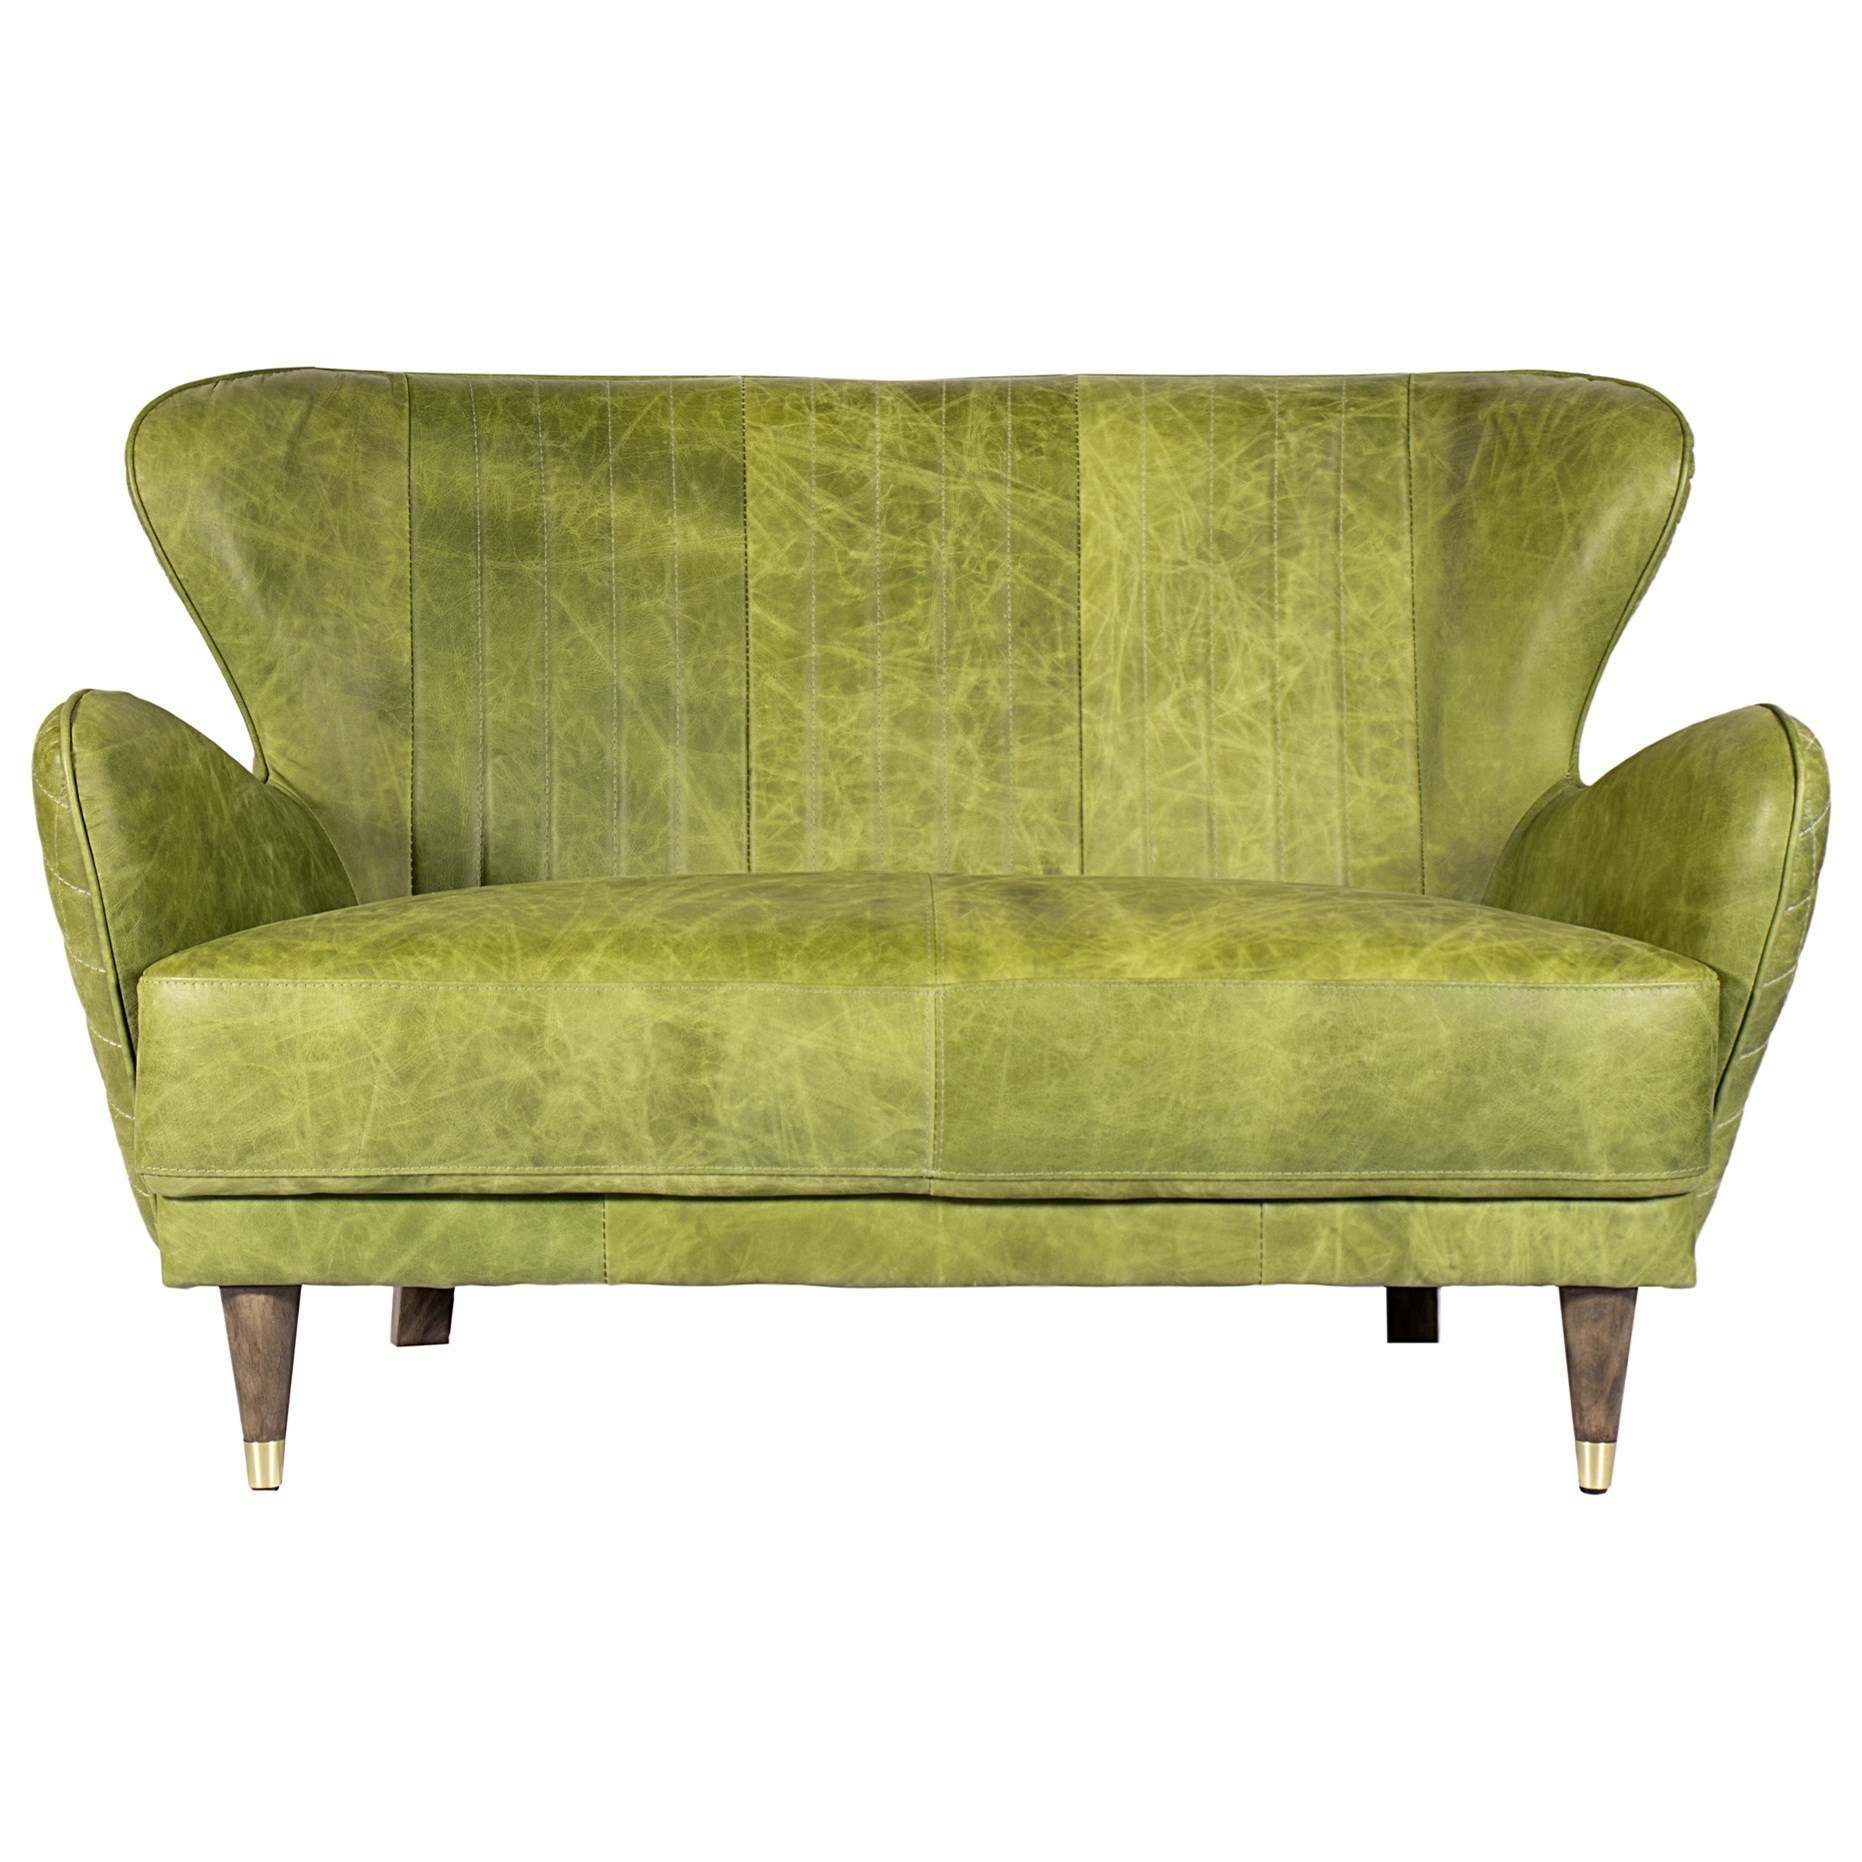 Keaton Loveseat by Moe's Home Collection at Stoney Creek Furniture